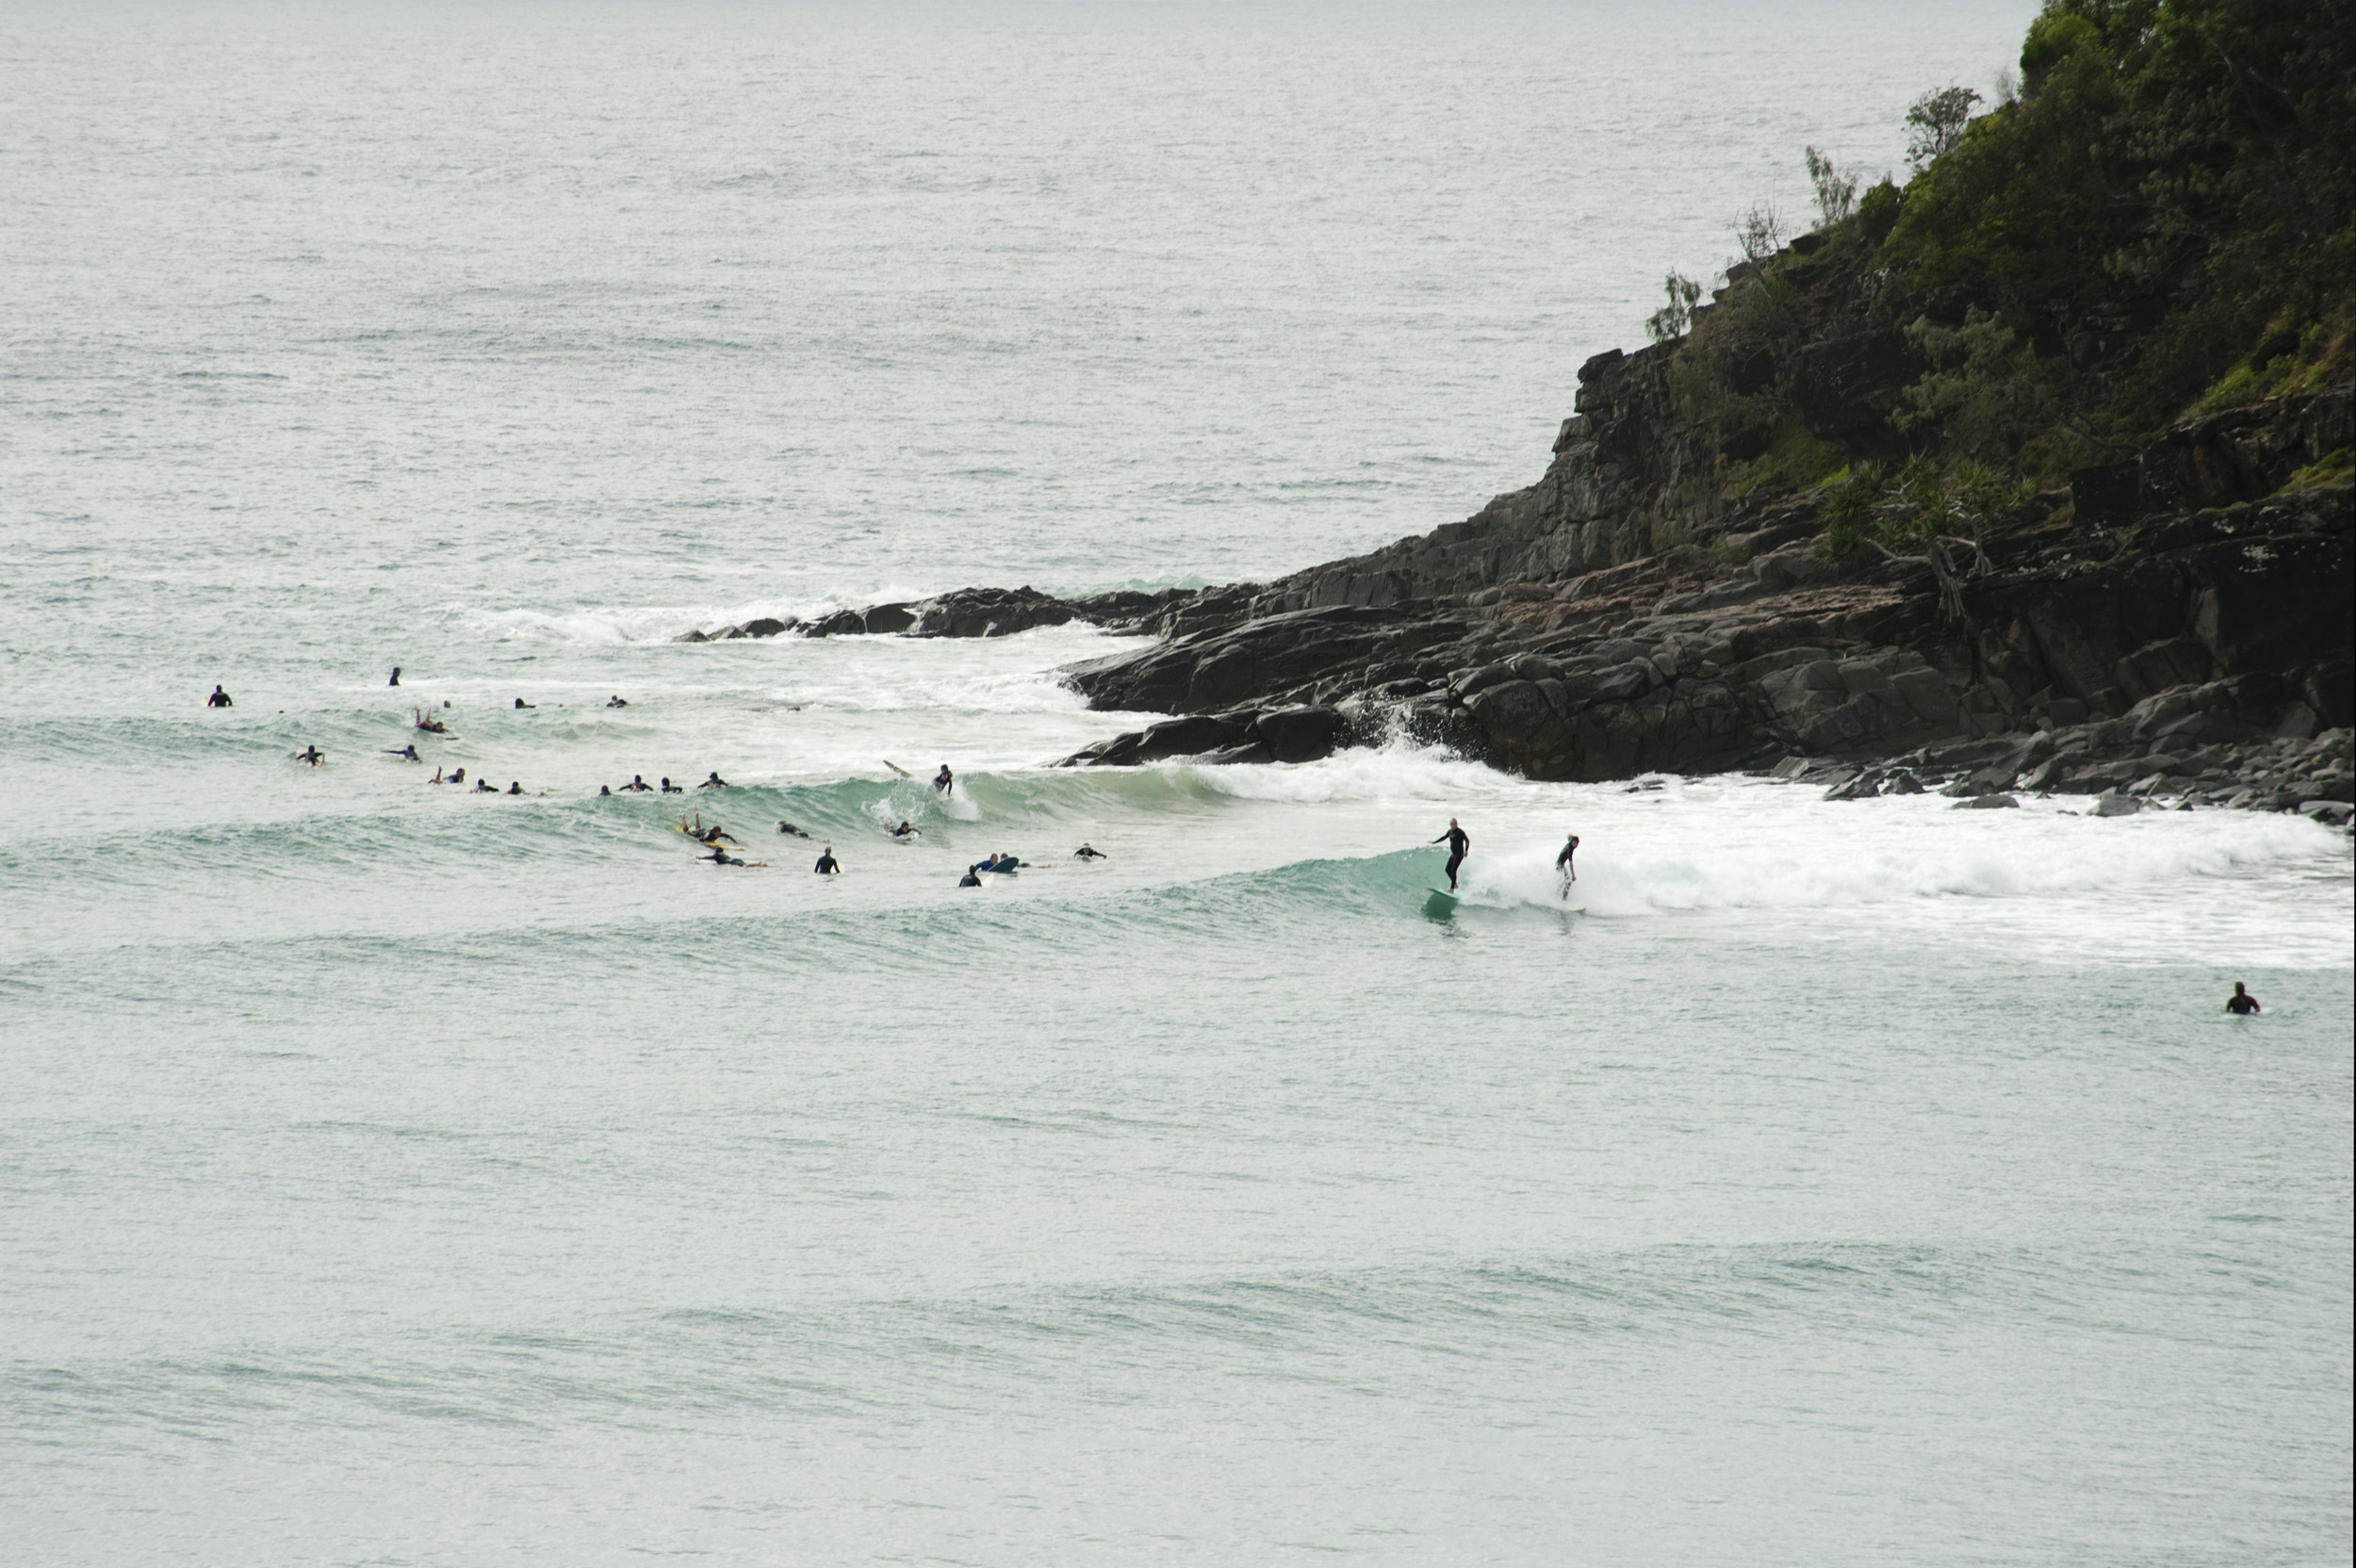 Surfers in the sea at Noosa beach, Australia riding the waves at the bottom of a rocky headland as they wait for a roller to catch a ride